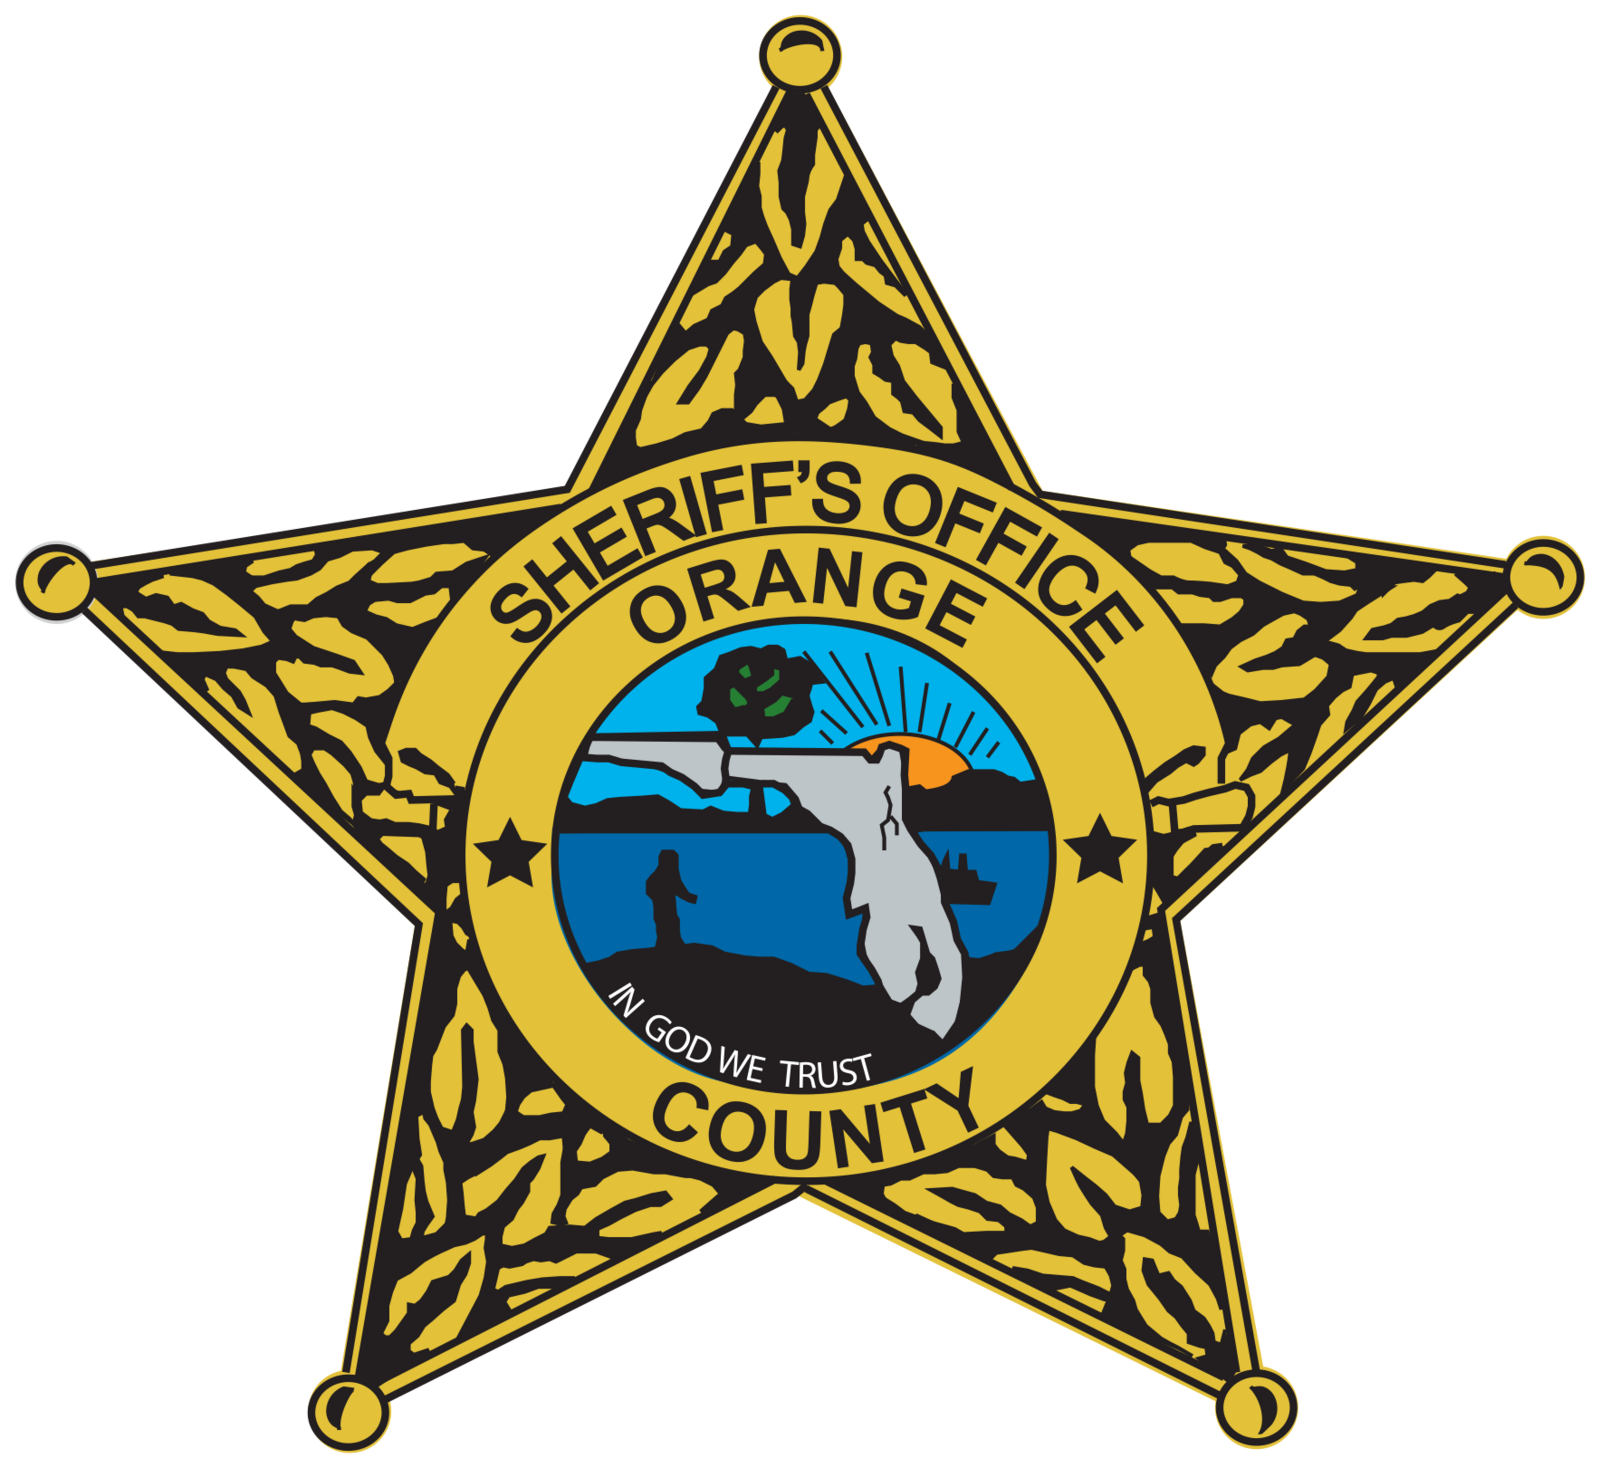 Orange county sheriff 39 s office 157 crime and safety - Orange county sheriffs office florida ...